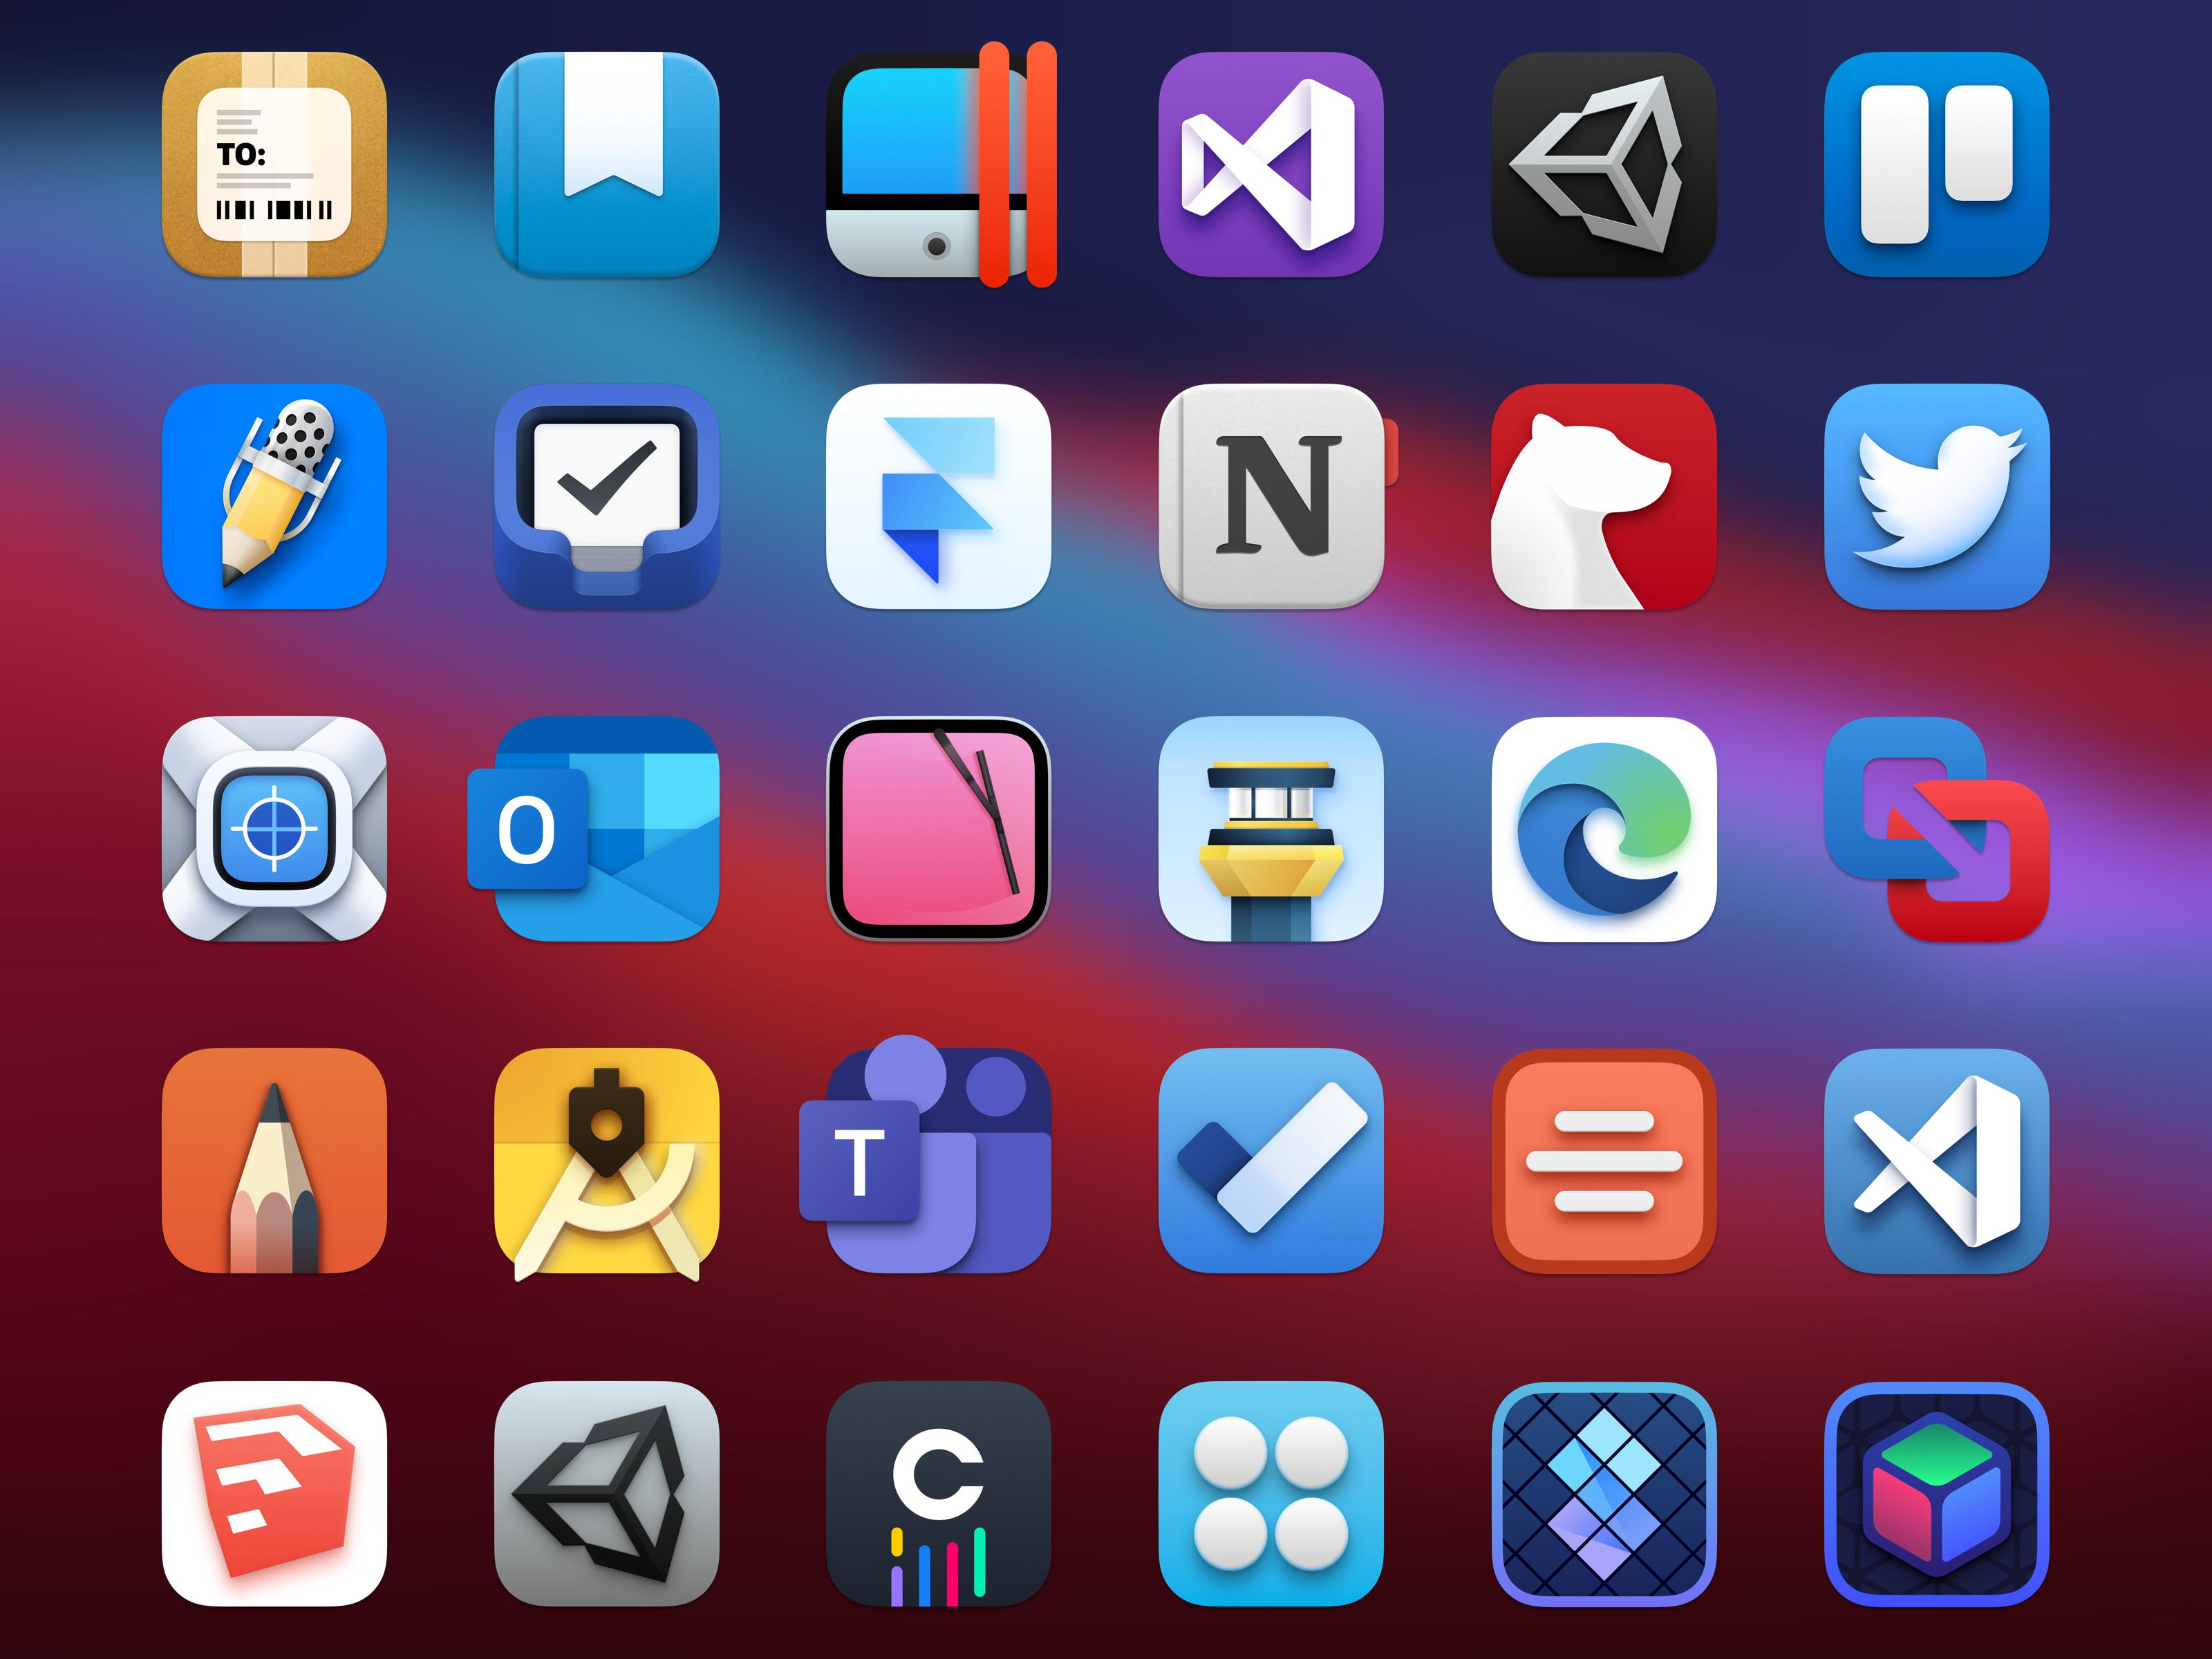 With macos 11 big sur, apple takes the opportunity to refresh the mac's user interface. Final Set Of Replacement Icons For Big Sur Part 3 Macosbeta